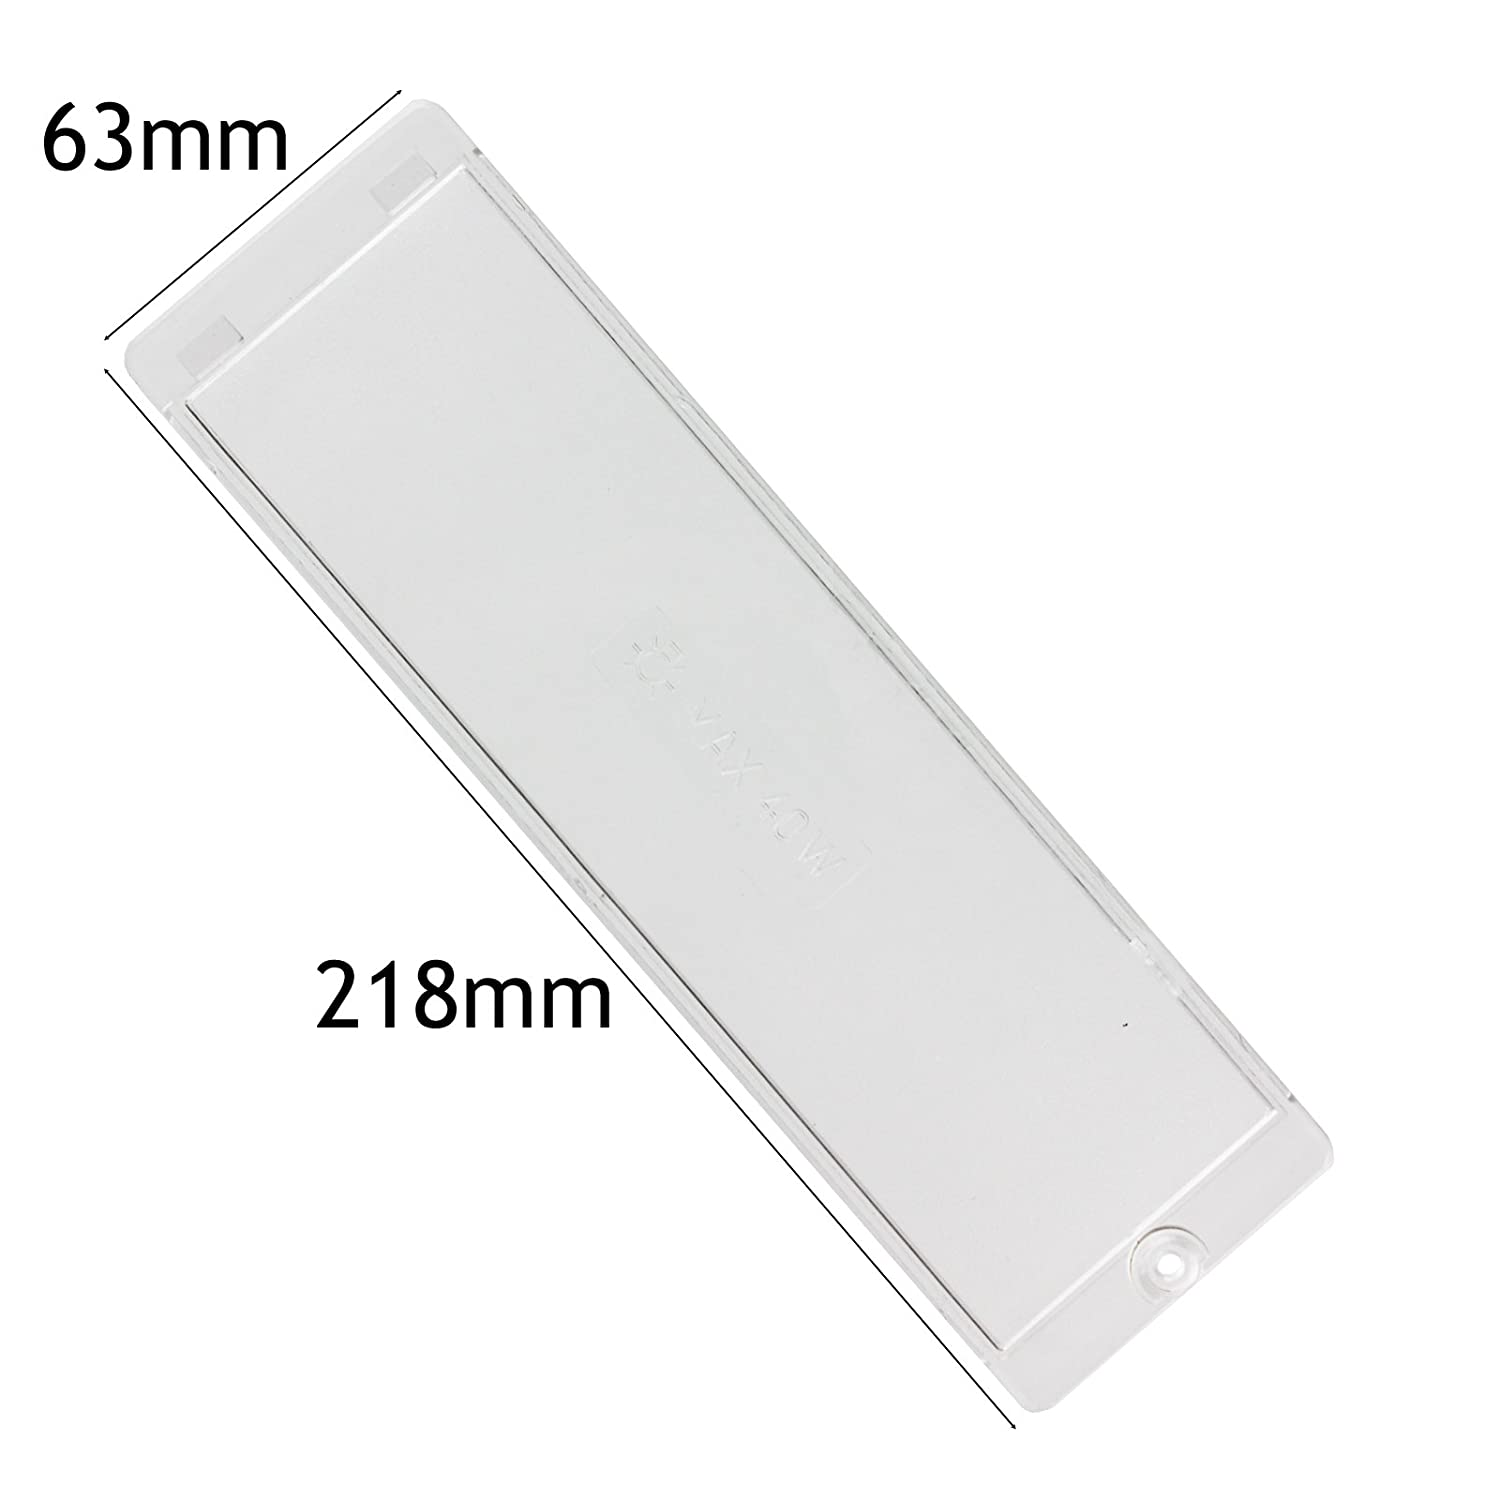 Spares2go Cooker Hood Light Diffuser / Lens Cover Plate (218Mm X 63Mm)